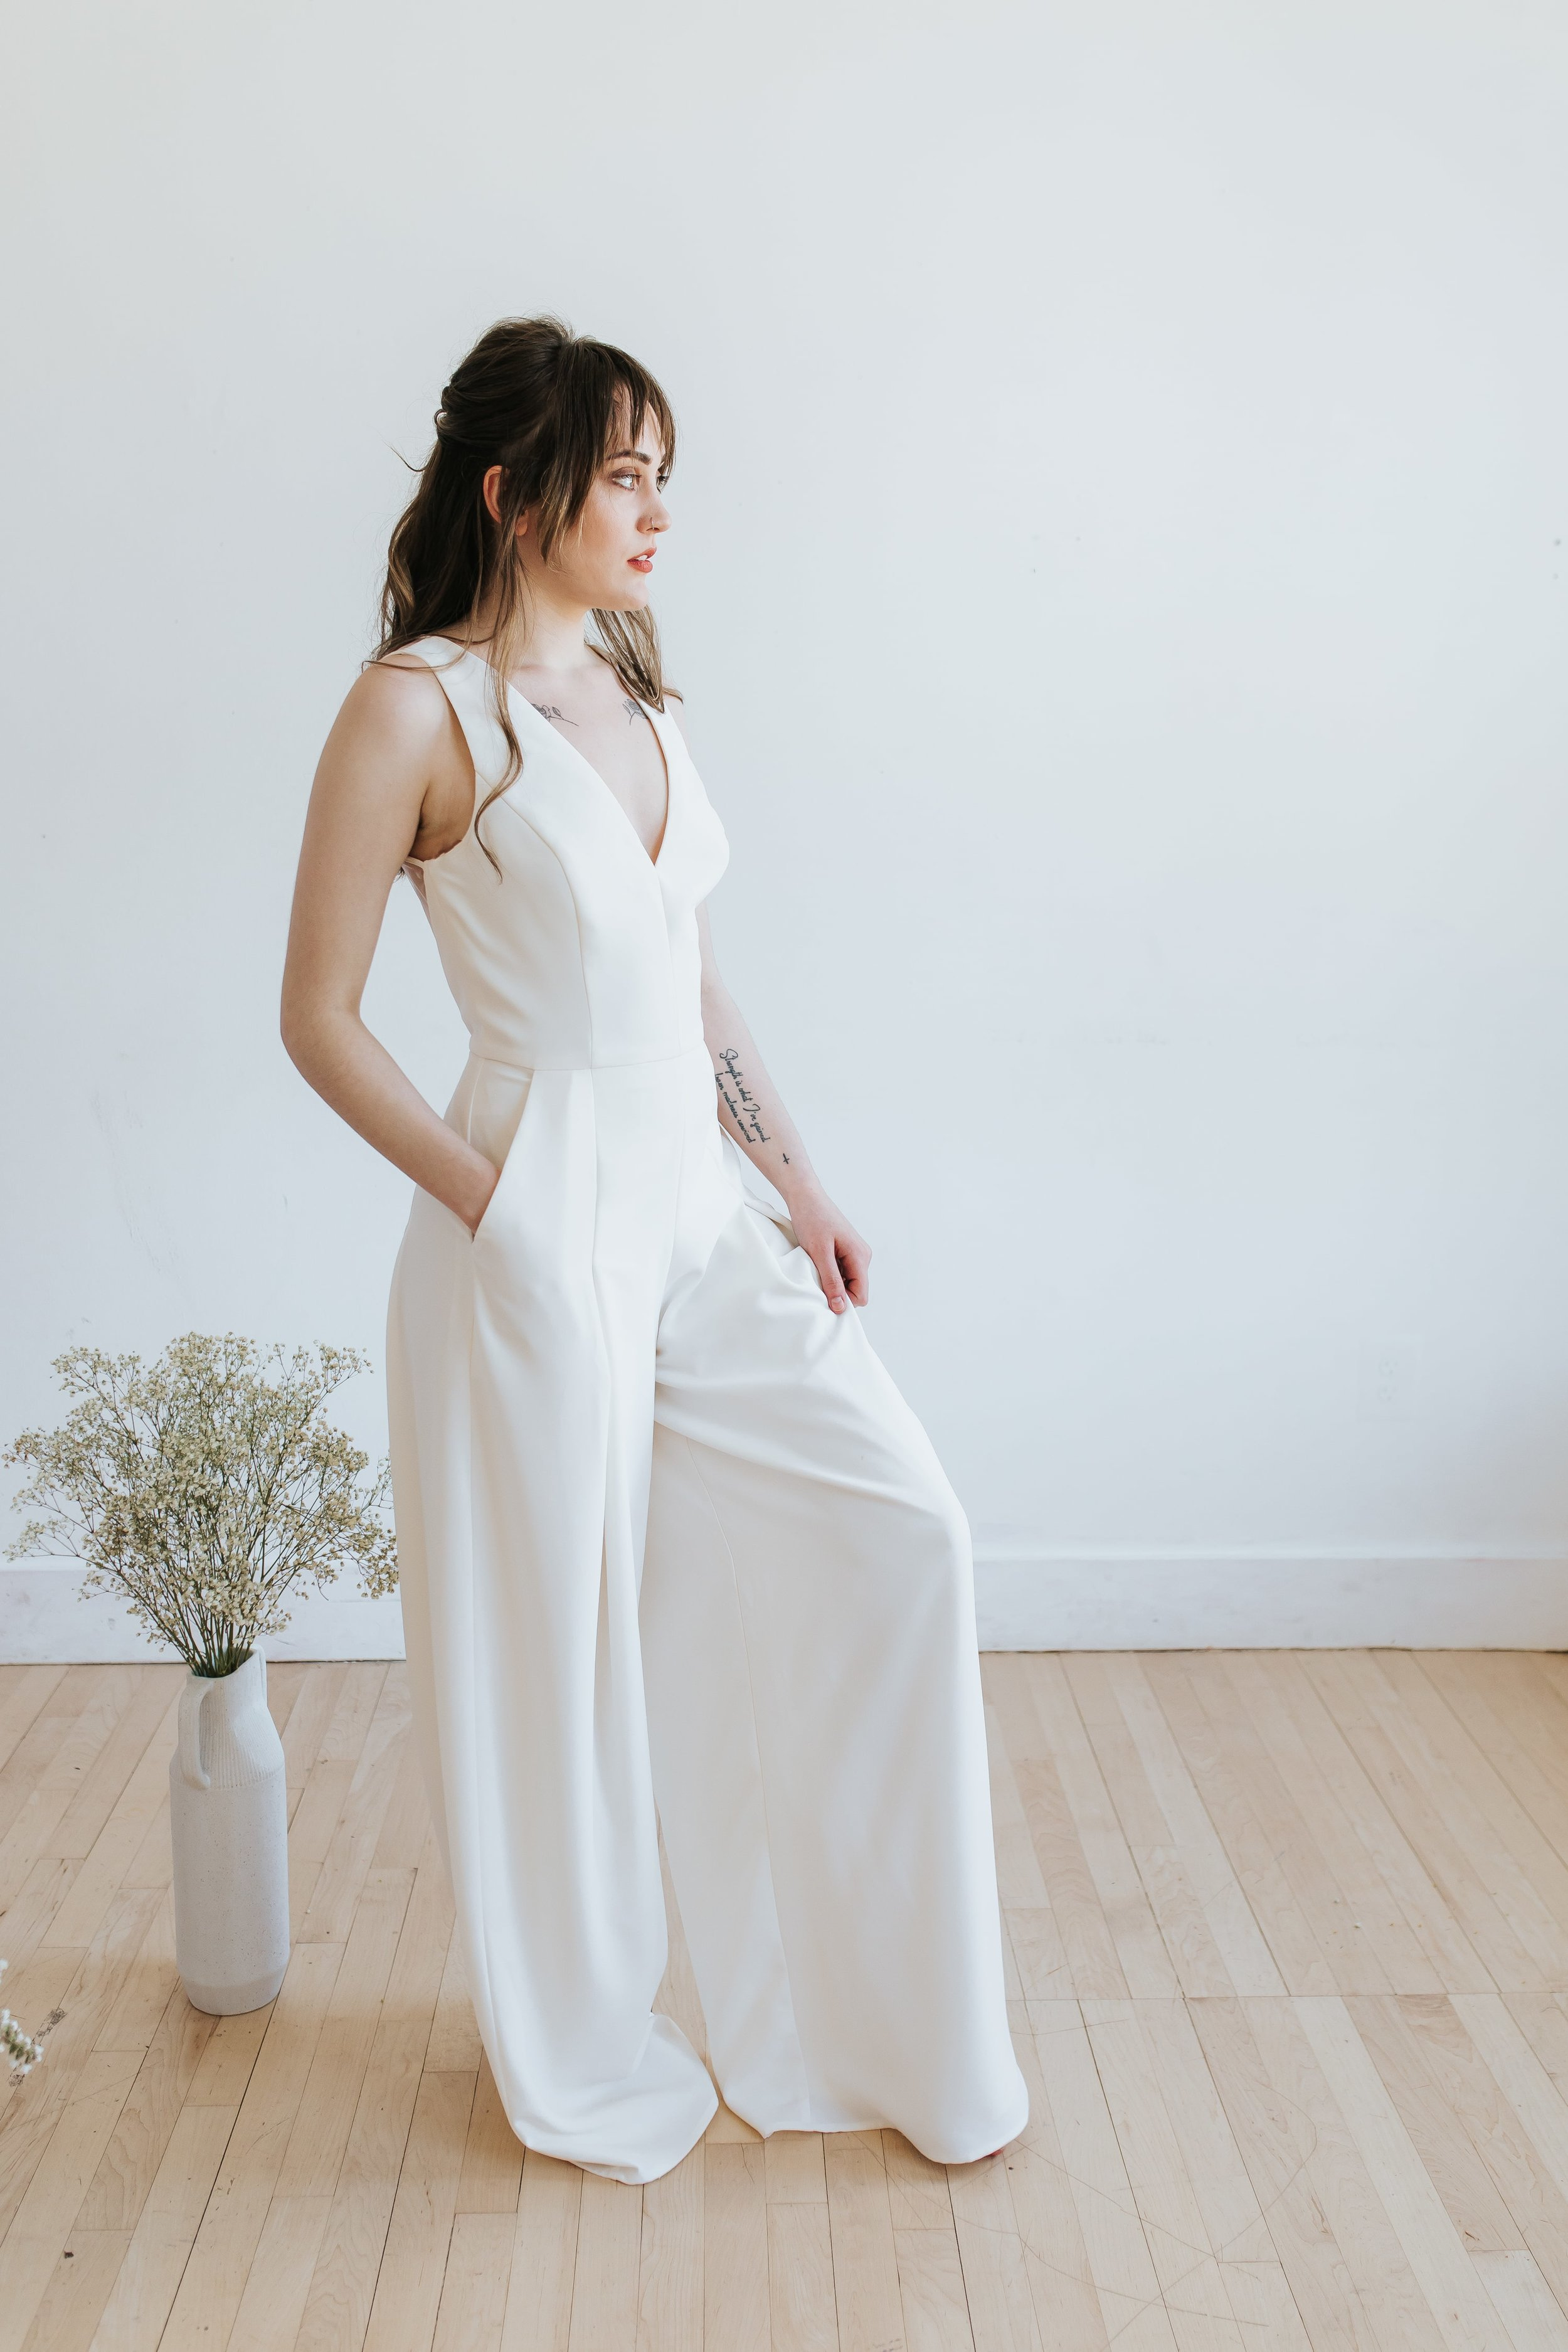 White Jumpsuit for Engagement photos, Rehearsal Dinners, and Wedding After Party